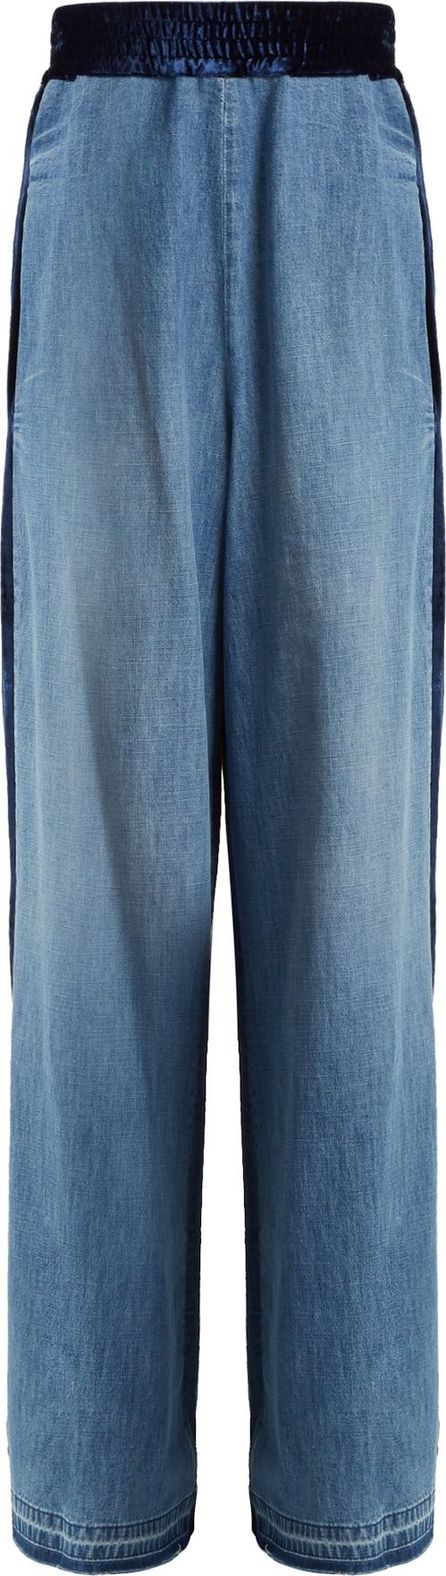 Golden Goose Deluxe Brand Sophie contrast-panel high-rise cotton trousers